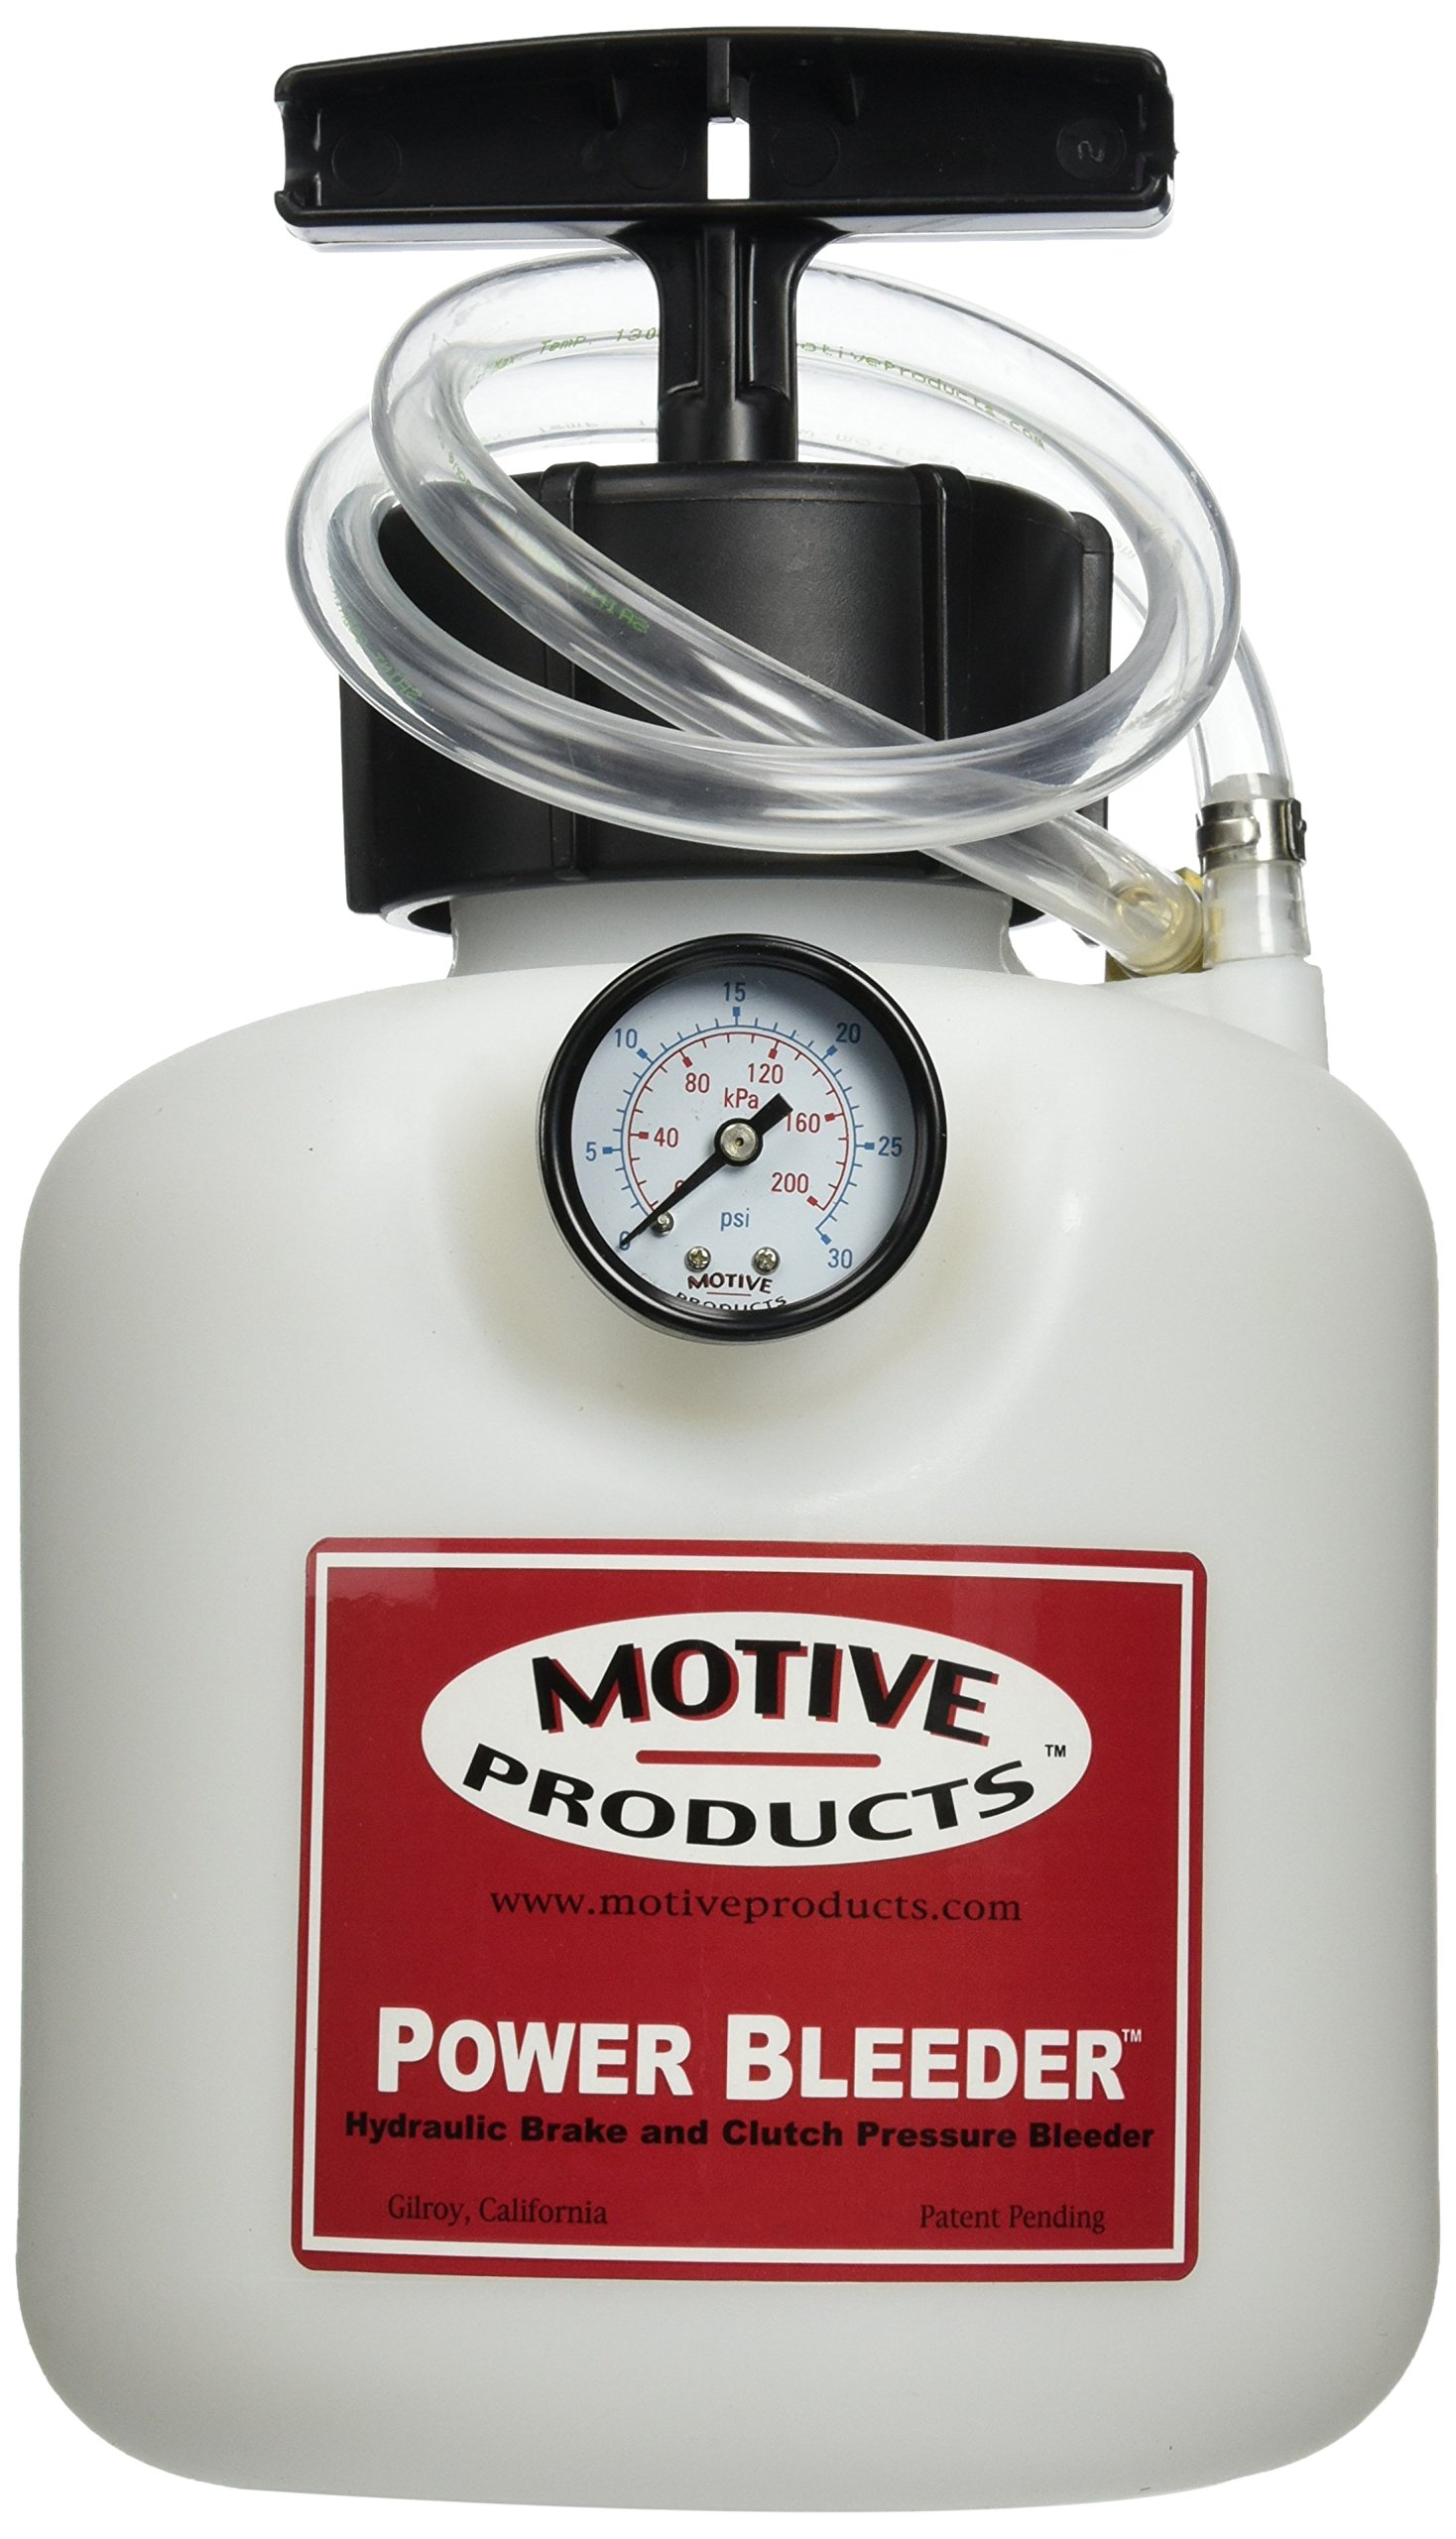 Motive Products 0115 Power Bleeder